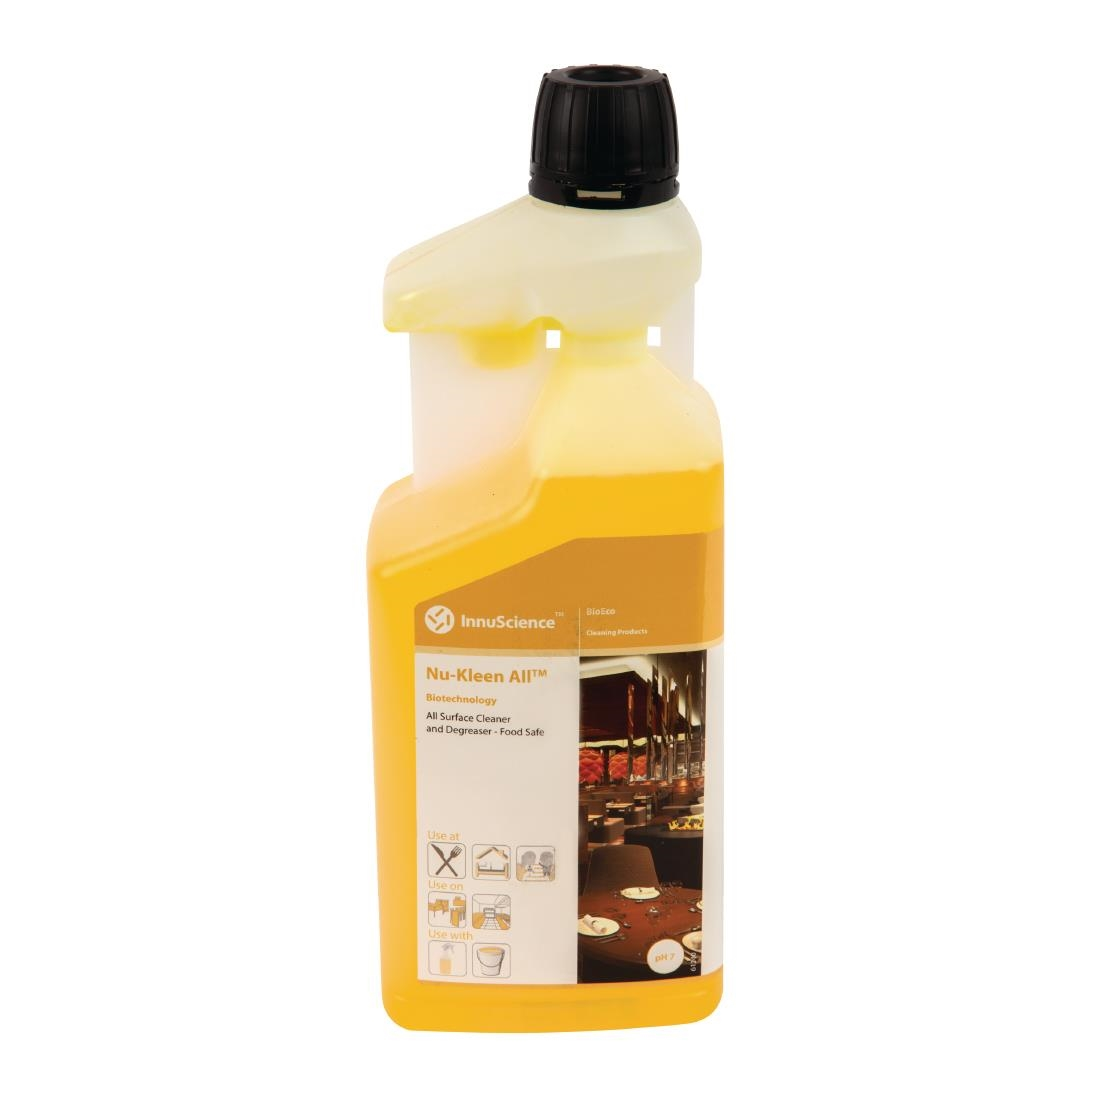 Image of InnuScience One Flip Nu-Kleen All All-Purpose Cleaner Super Concentrate 1Ltr (12 Pack) Pack of 12